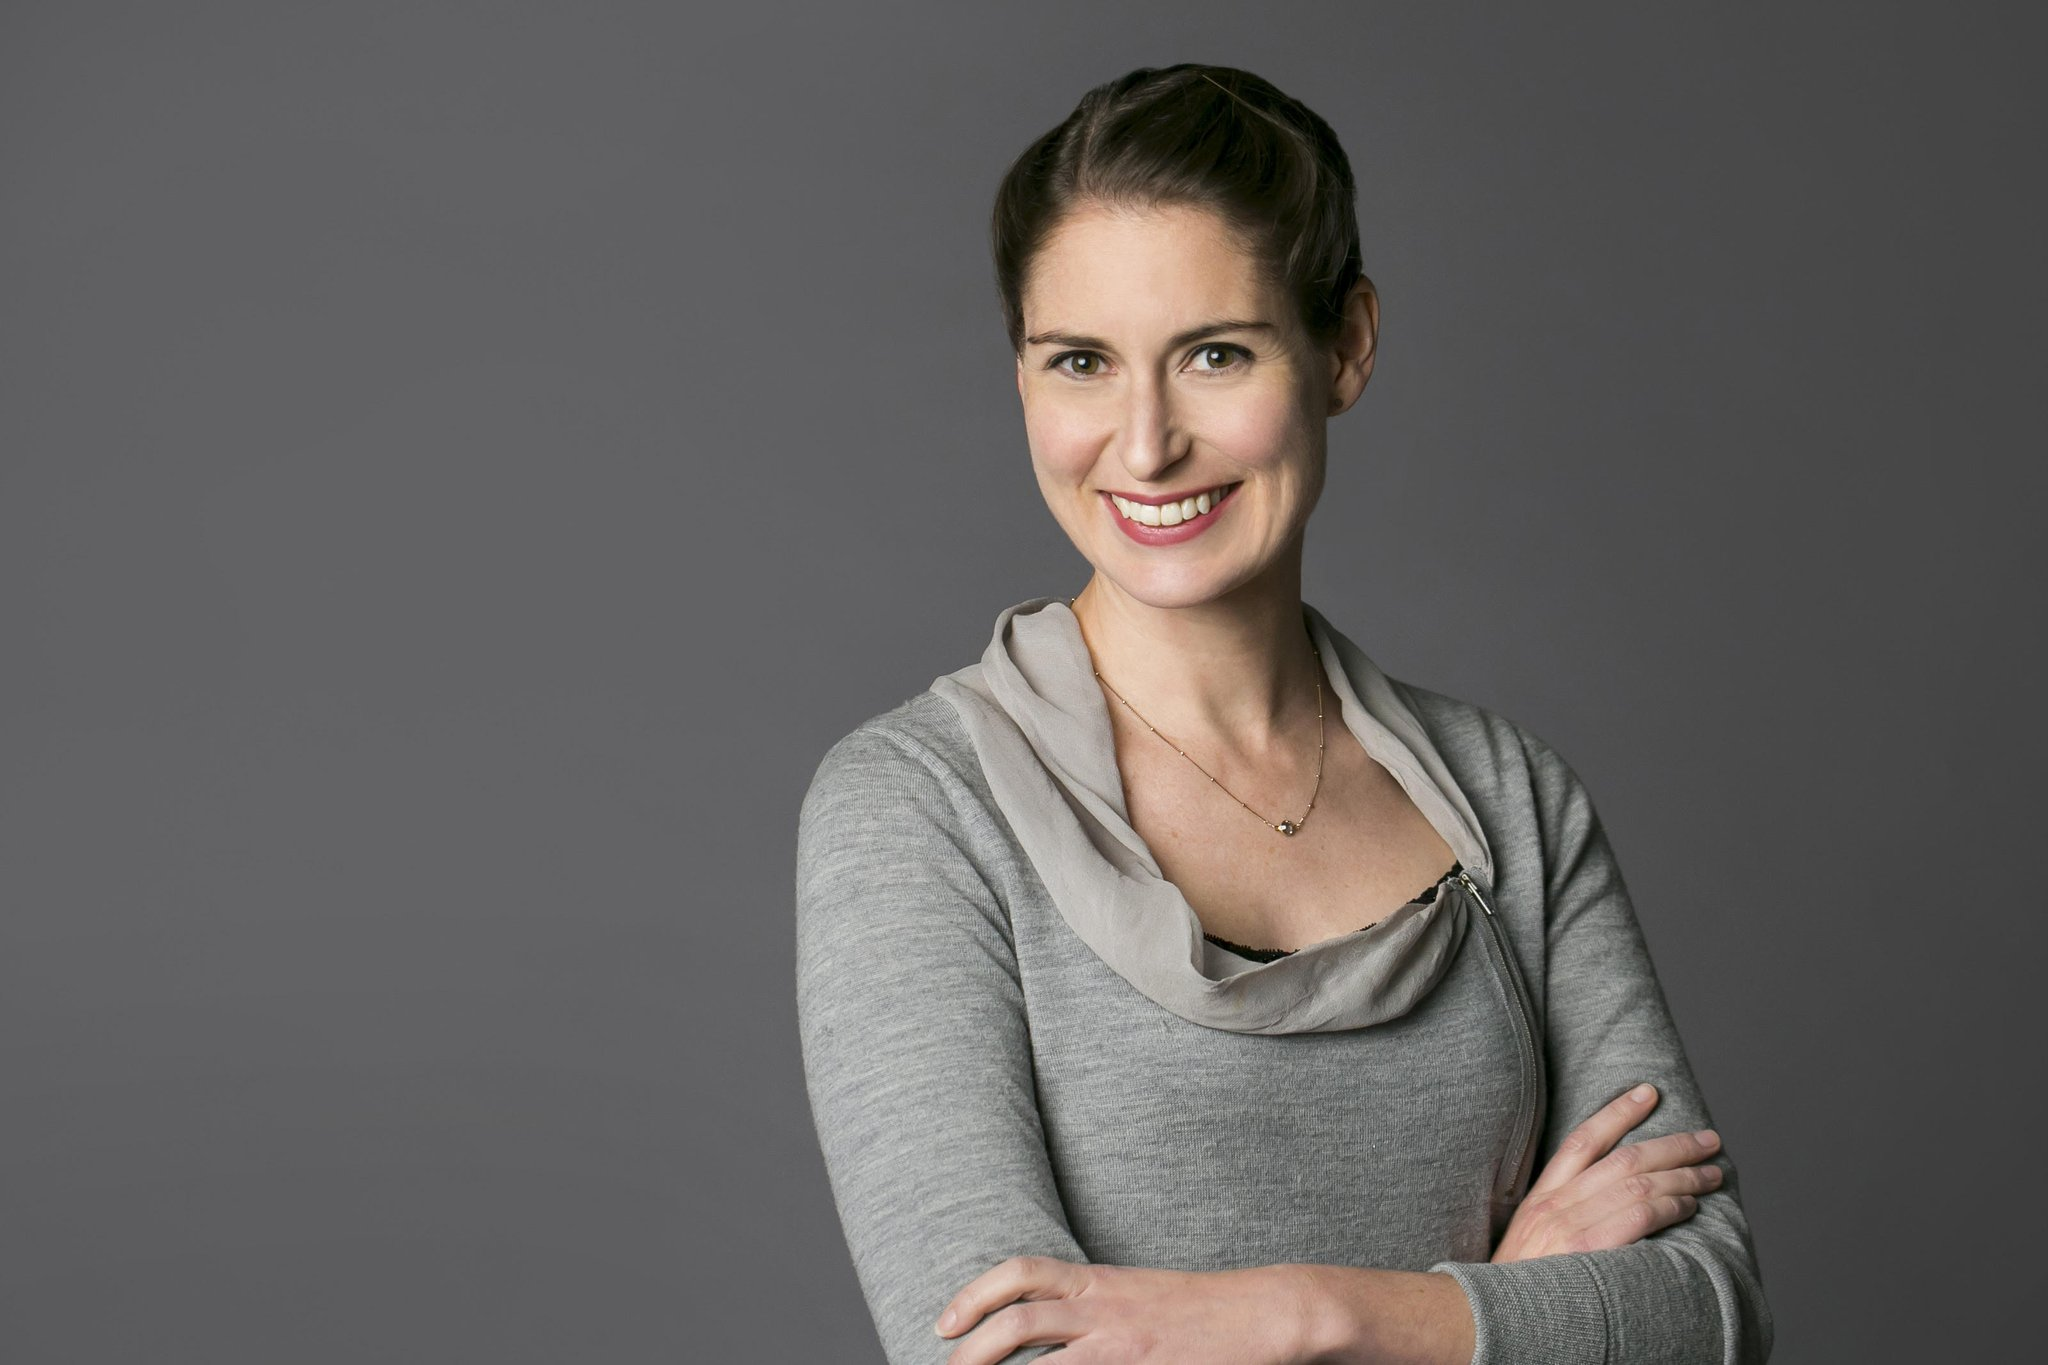 suzanne-appel